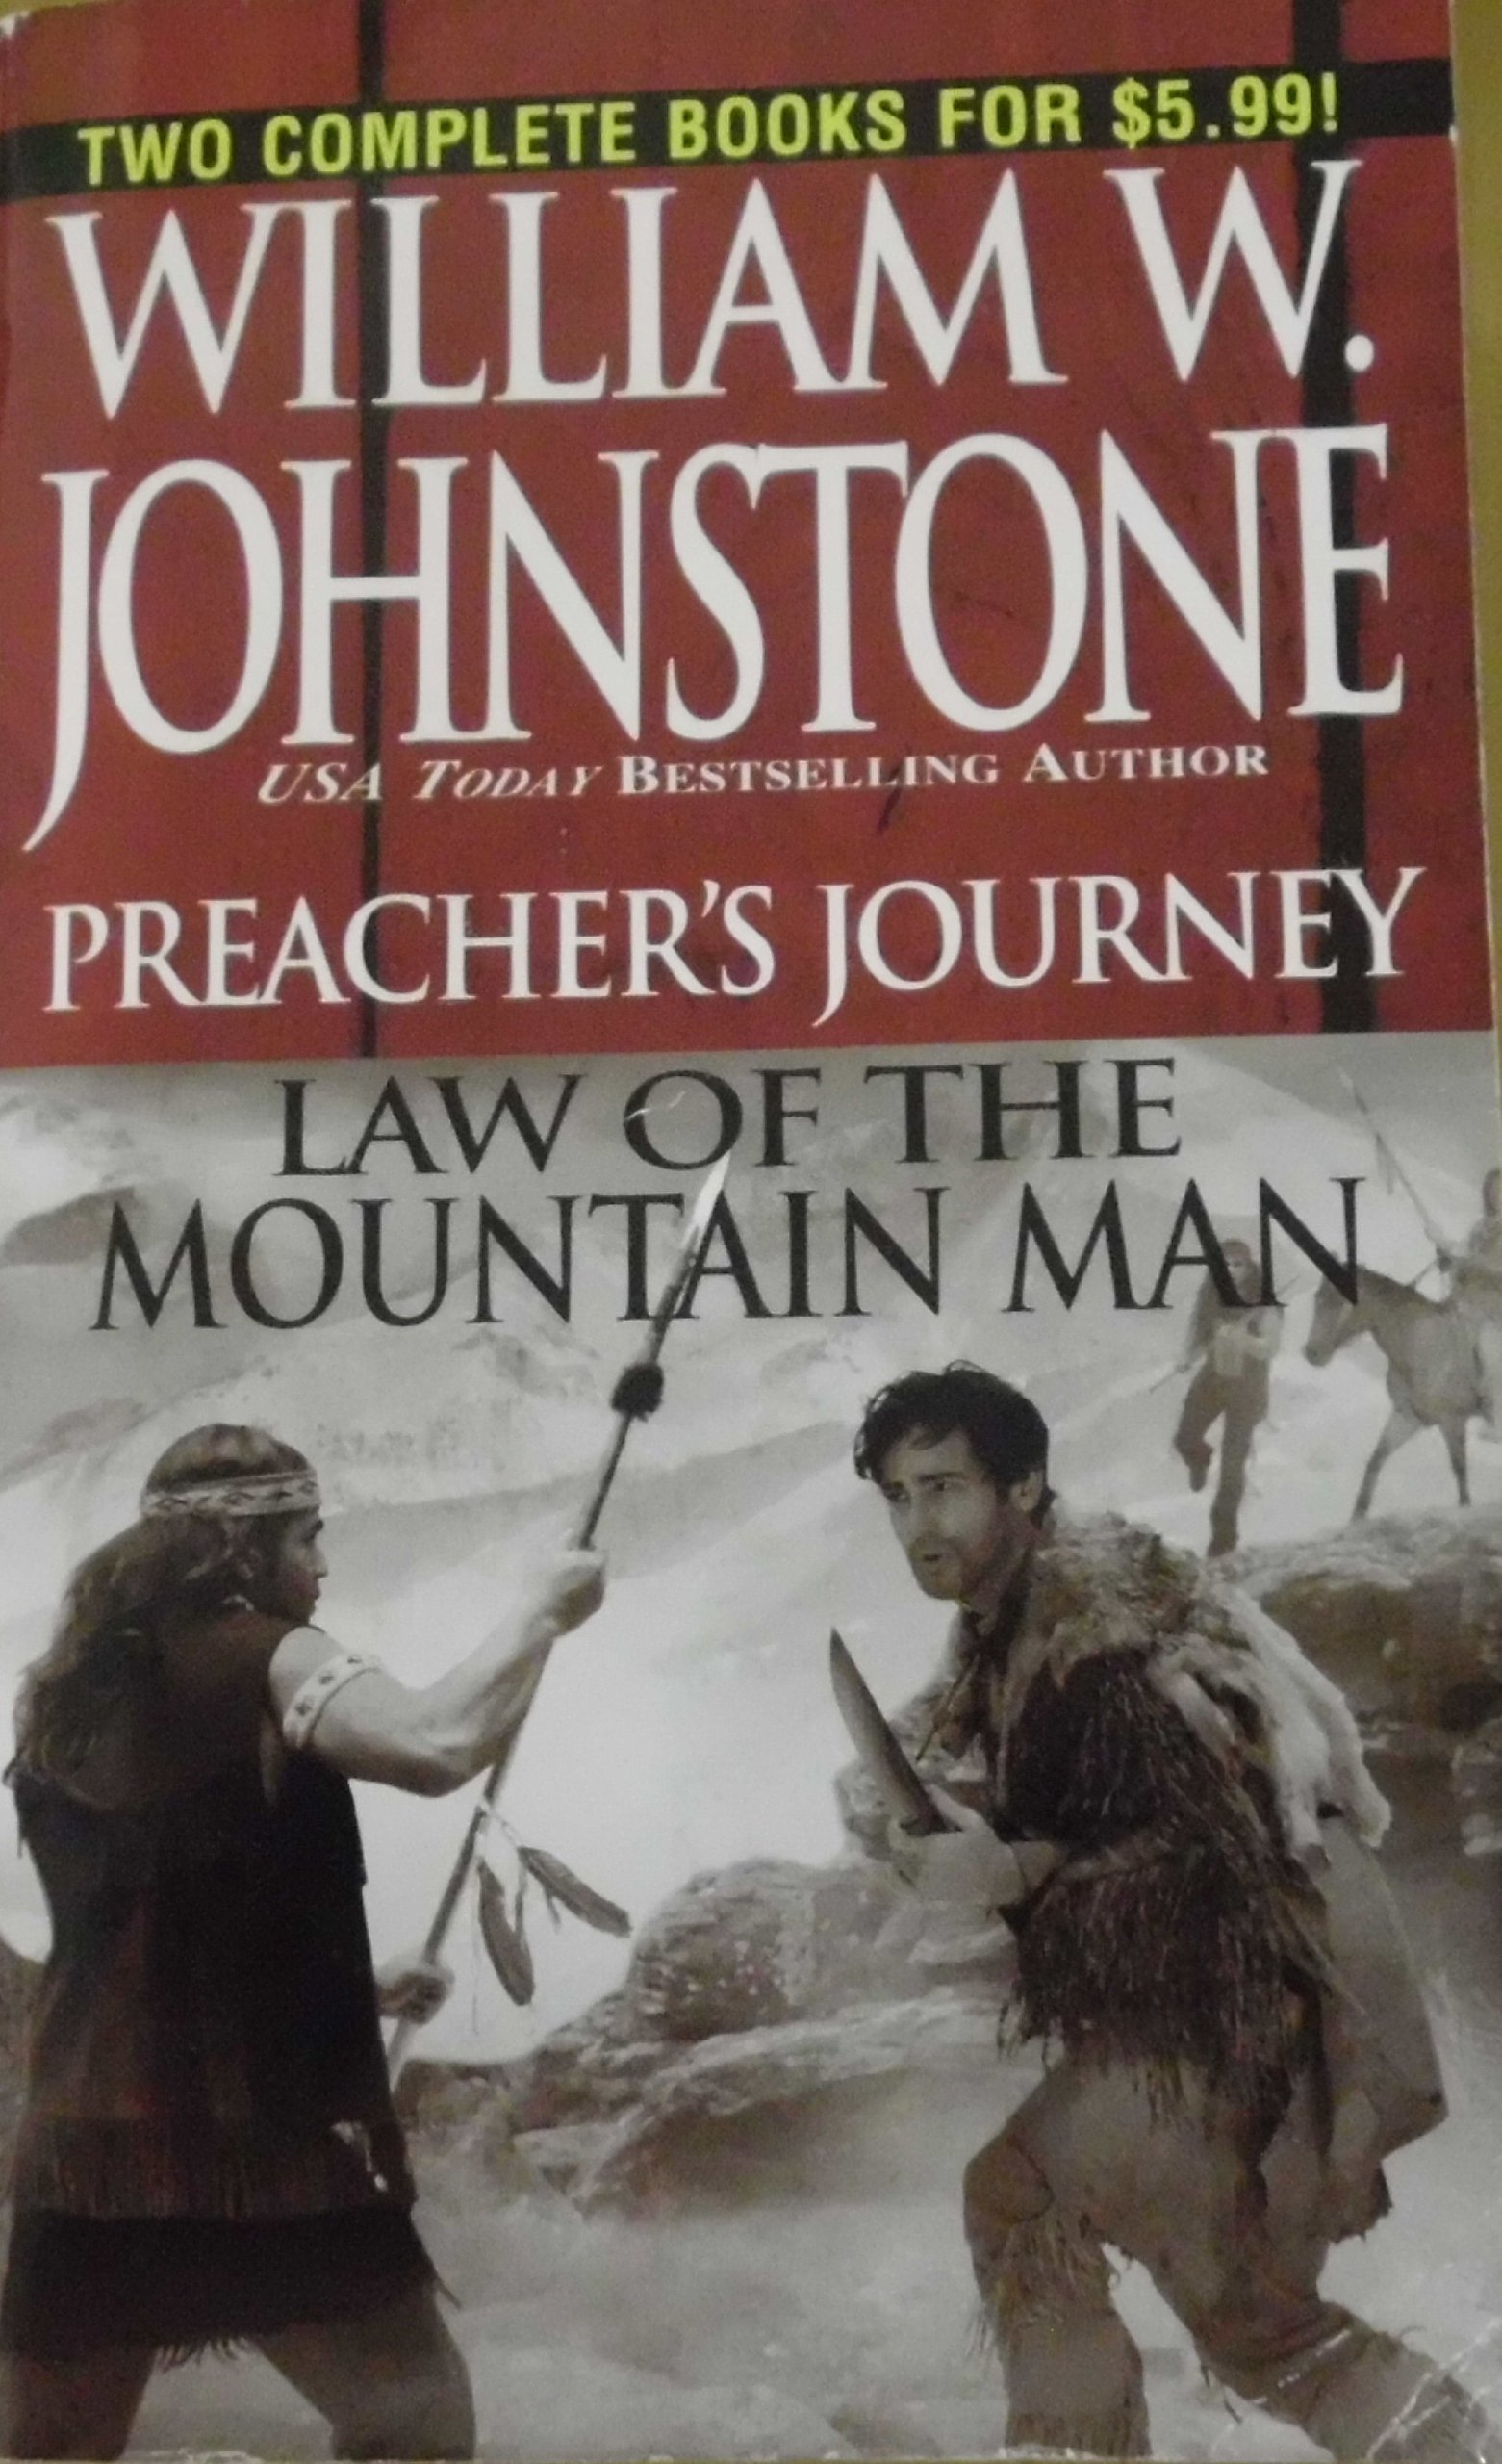 Preacher's Journey / Law of the Mountain Man (2-in-1 book) PDF